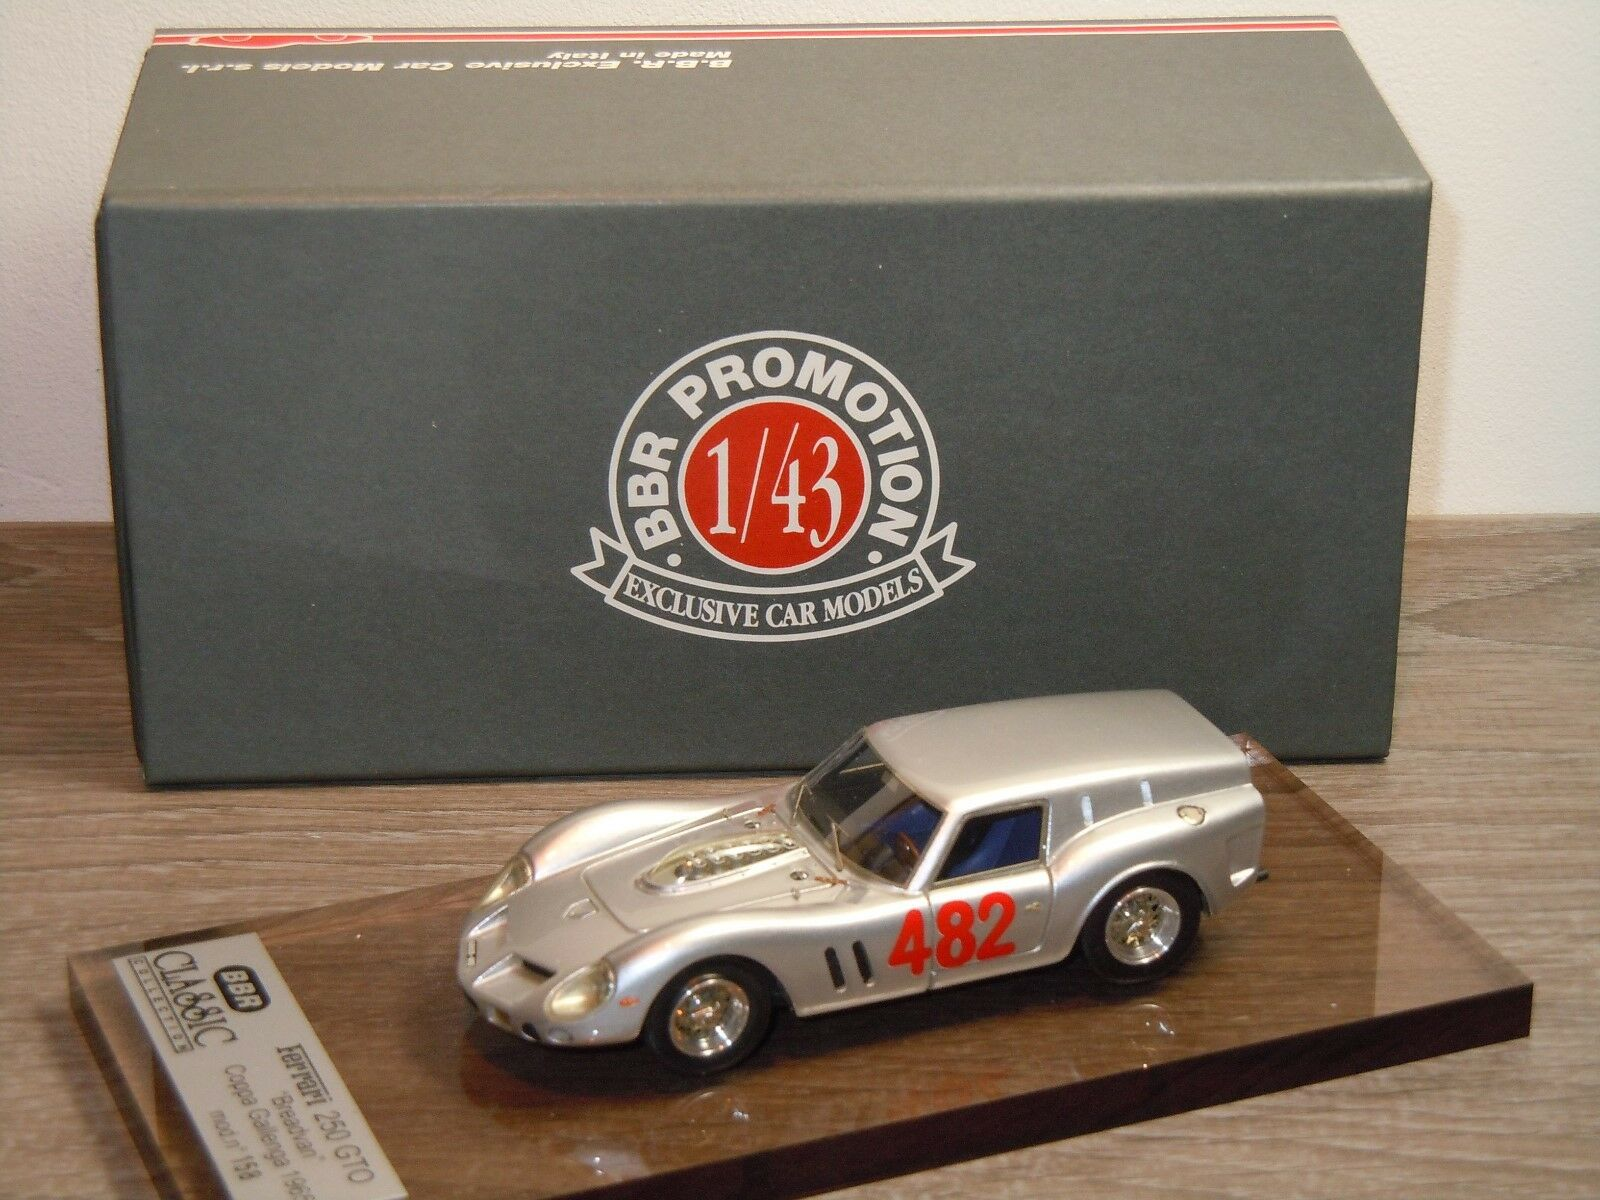 Ferrari 250 Breadvan Coppa Gallenga 1965 - BBR Models  in Box 34955